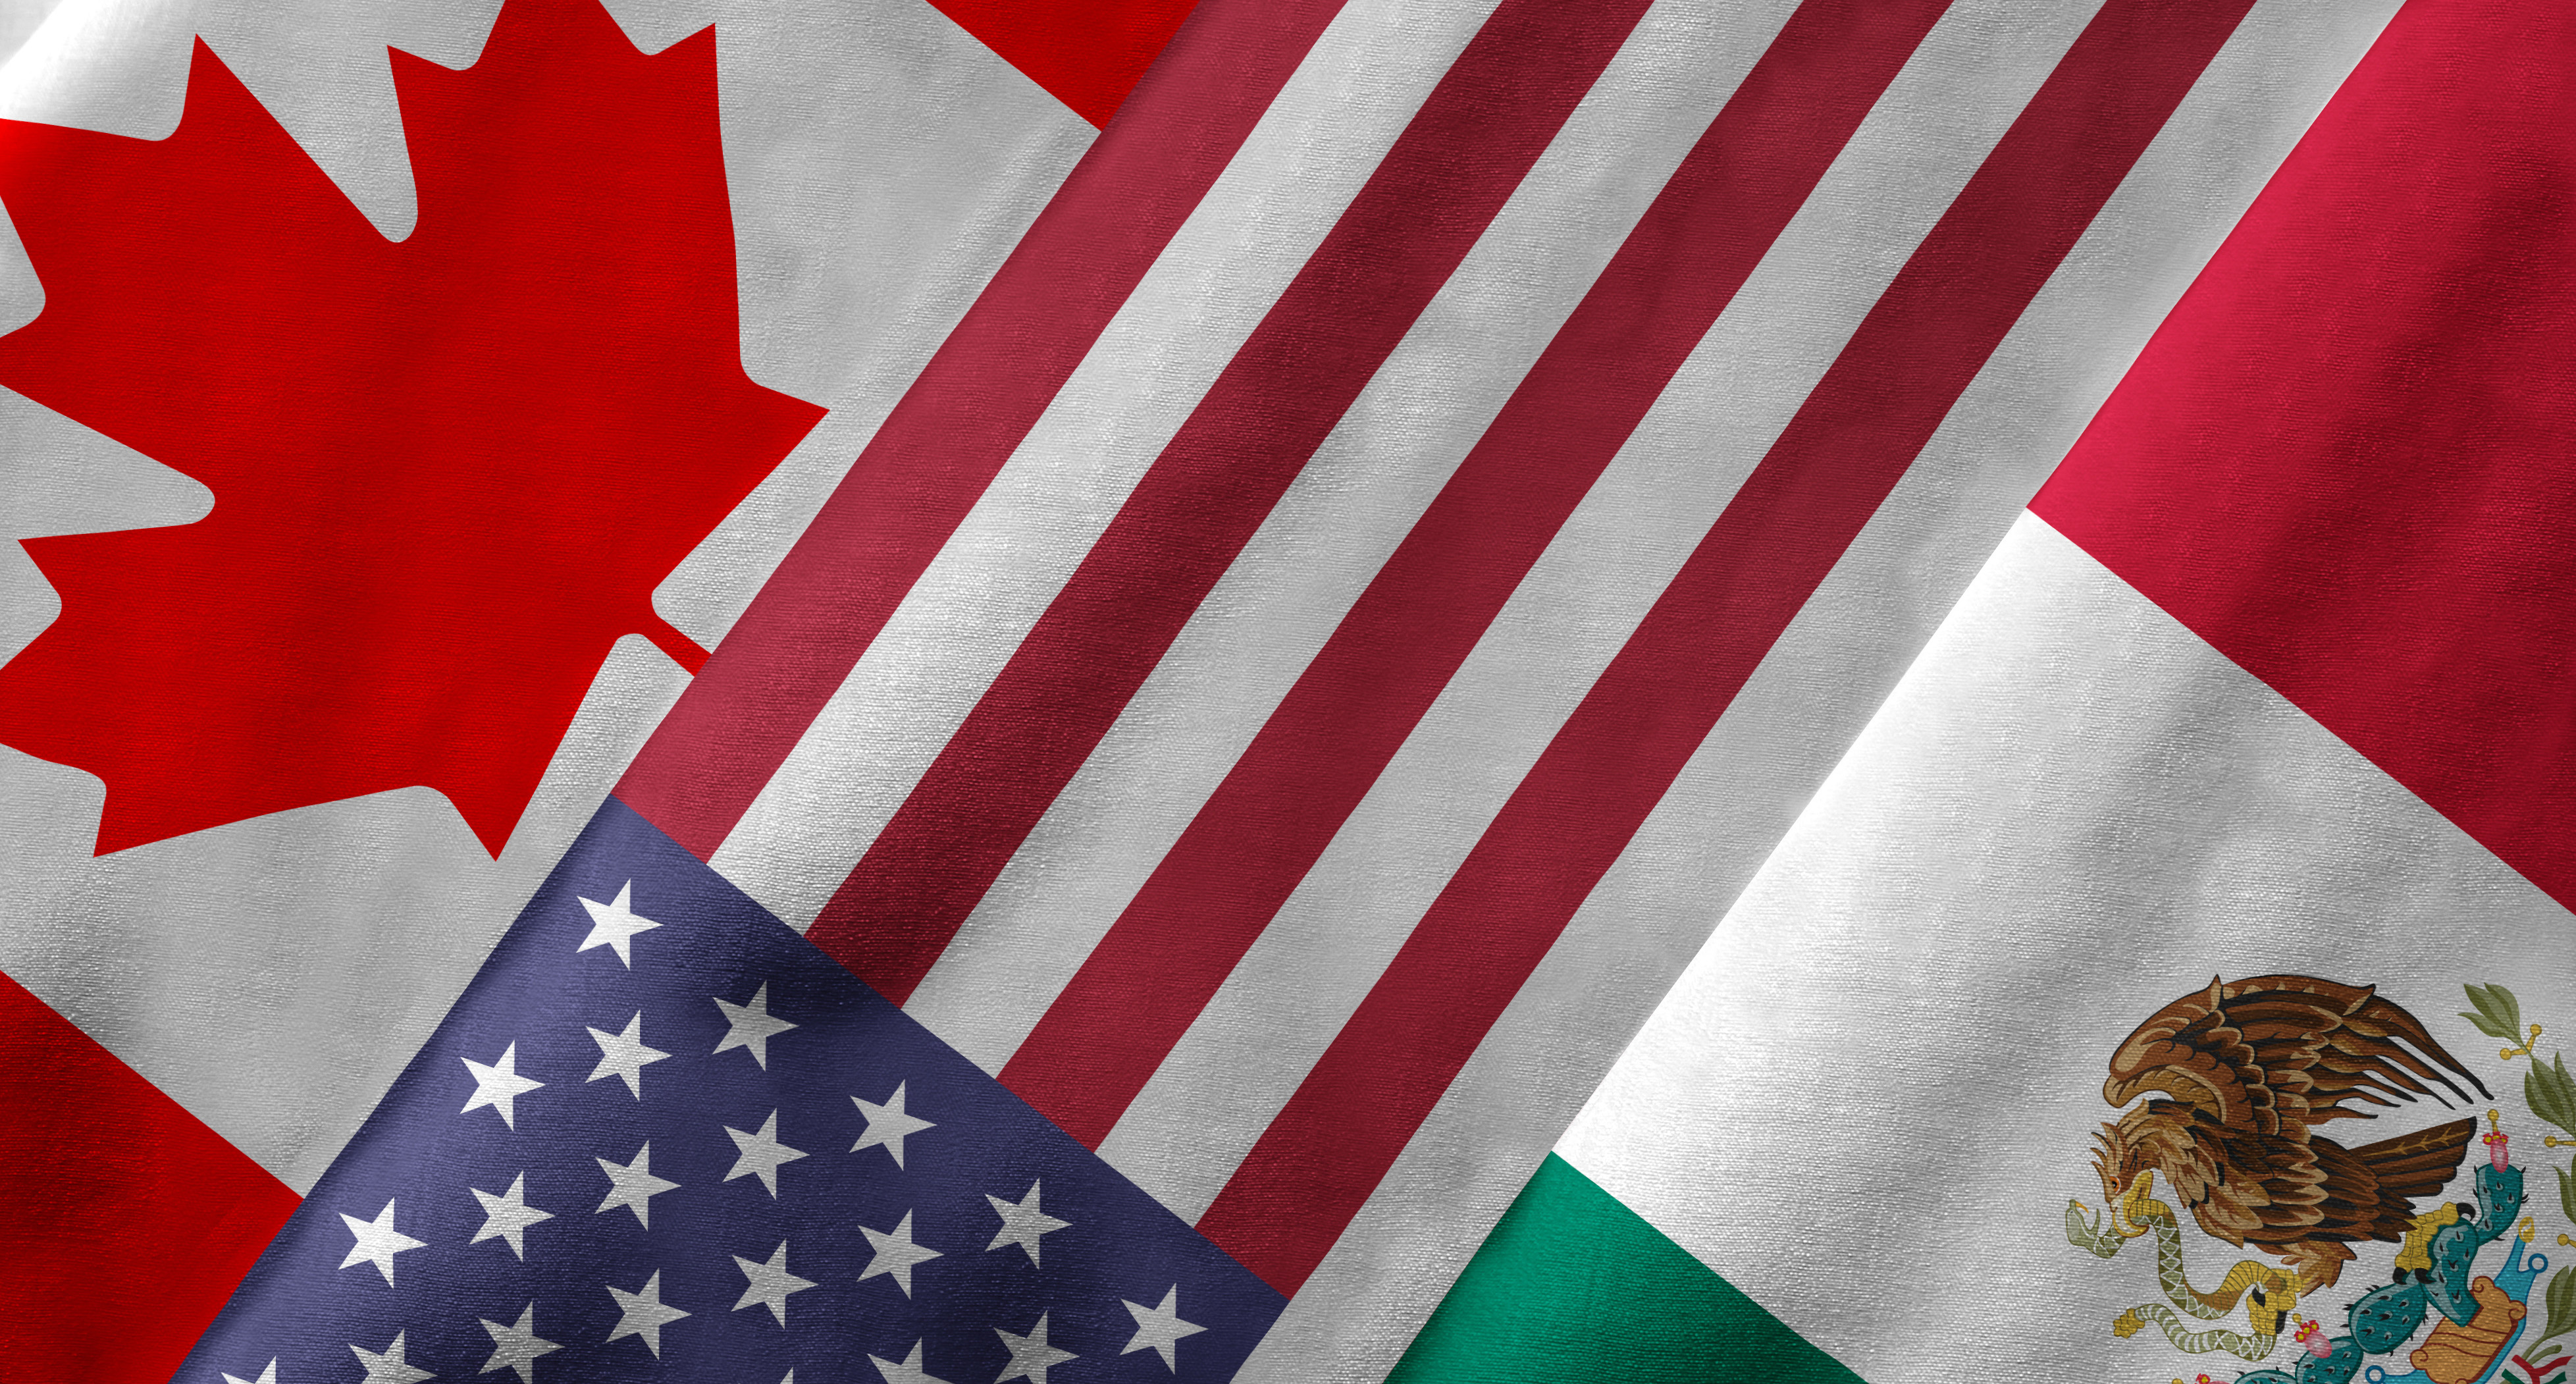 flags of canada, the united states, and mexico -- the member states of nafta